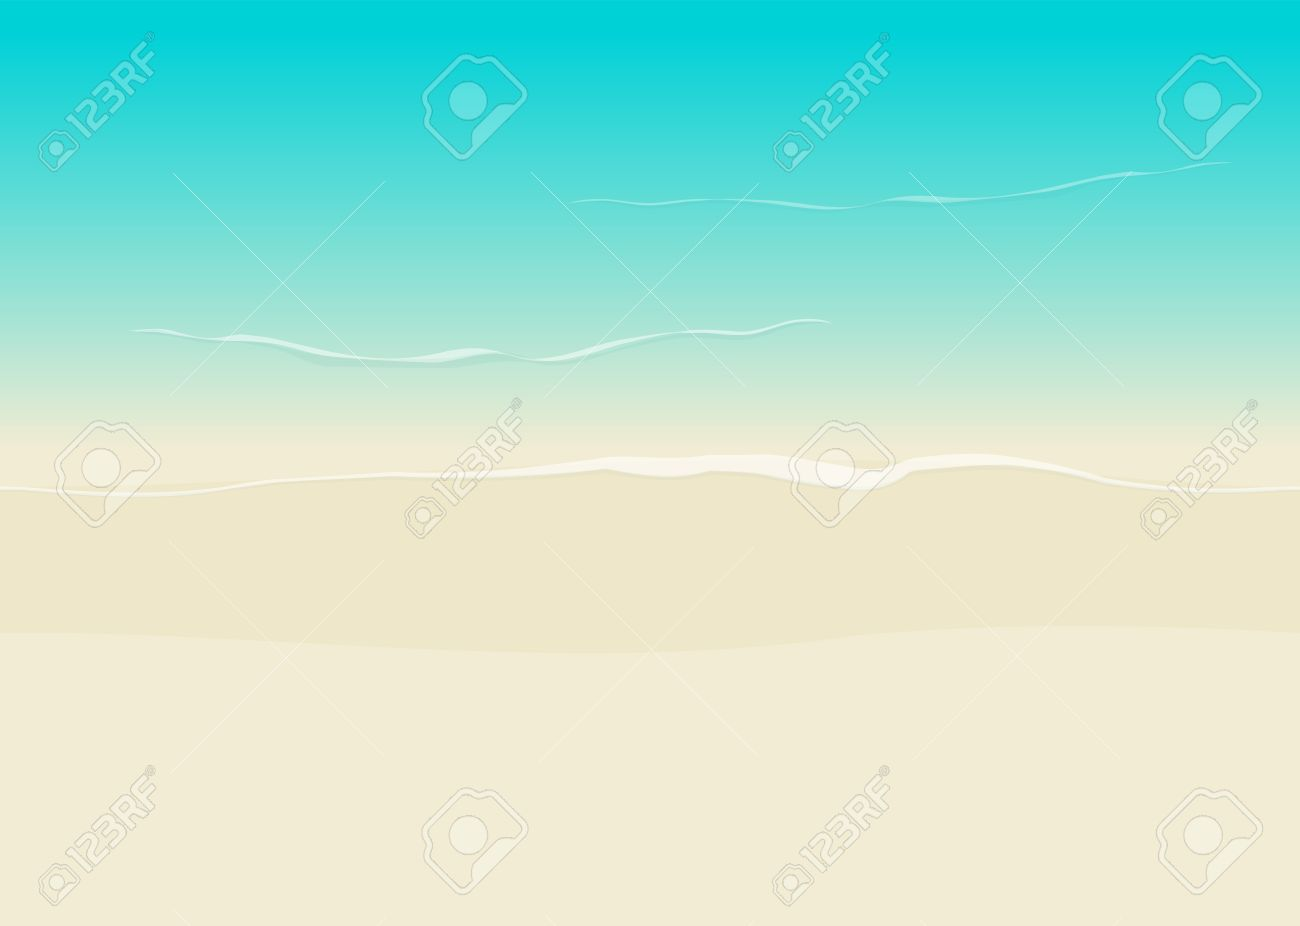 Beach Background Seamless Top View Vector Illustration Sea Coast And Sand Backdrop Stock